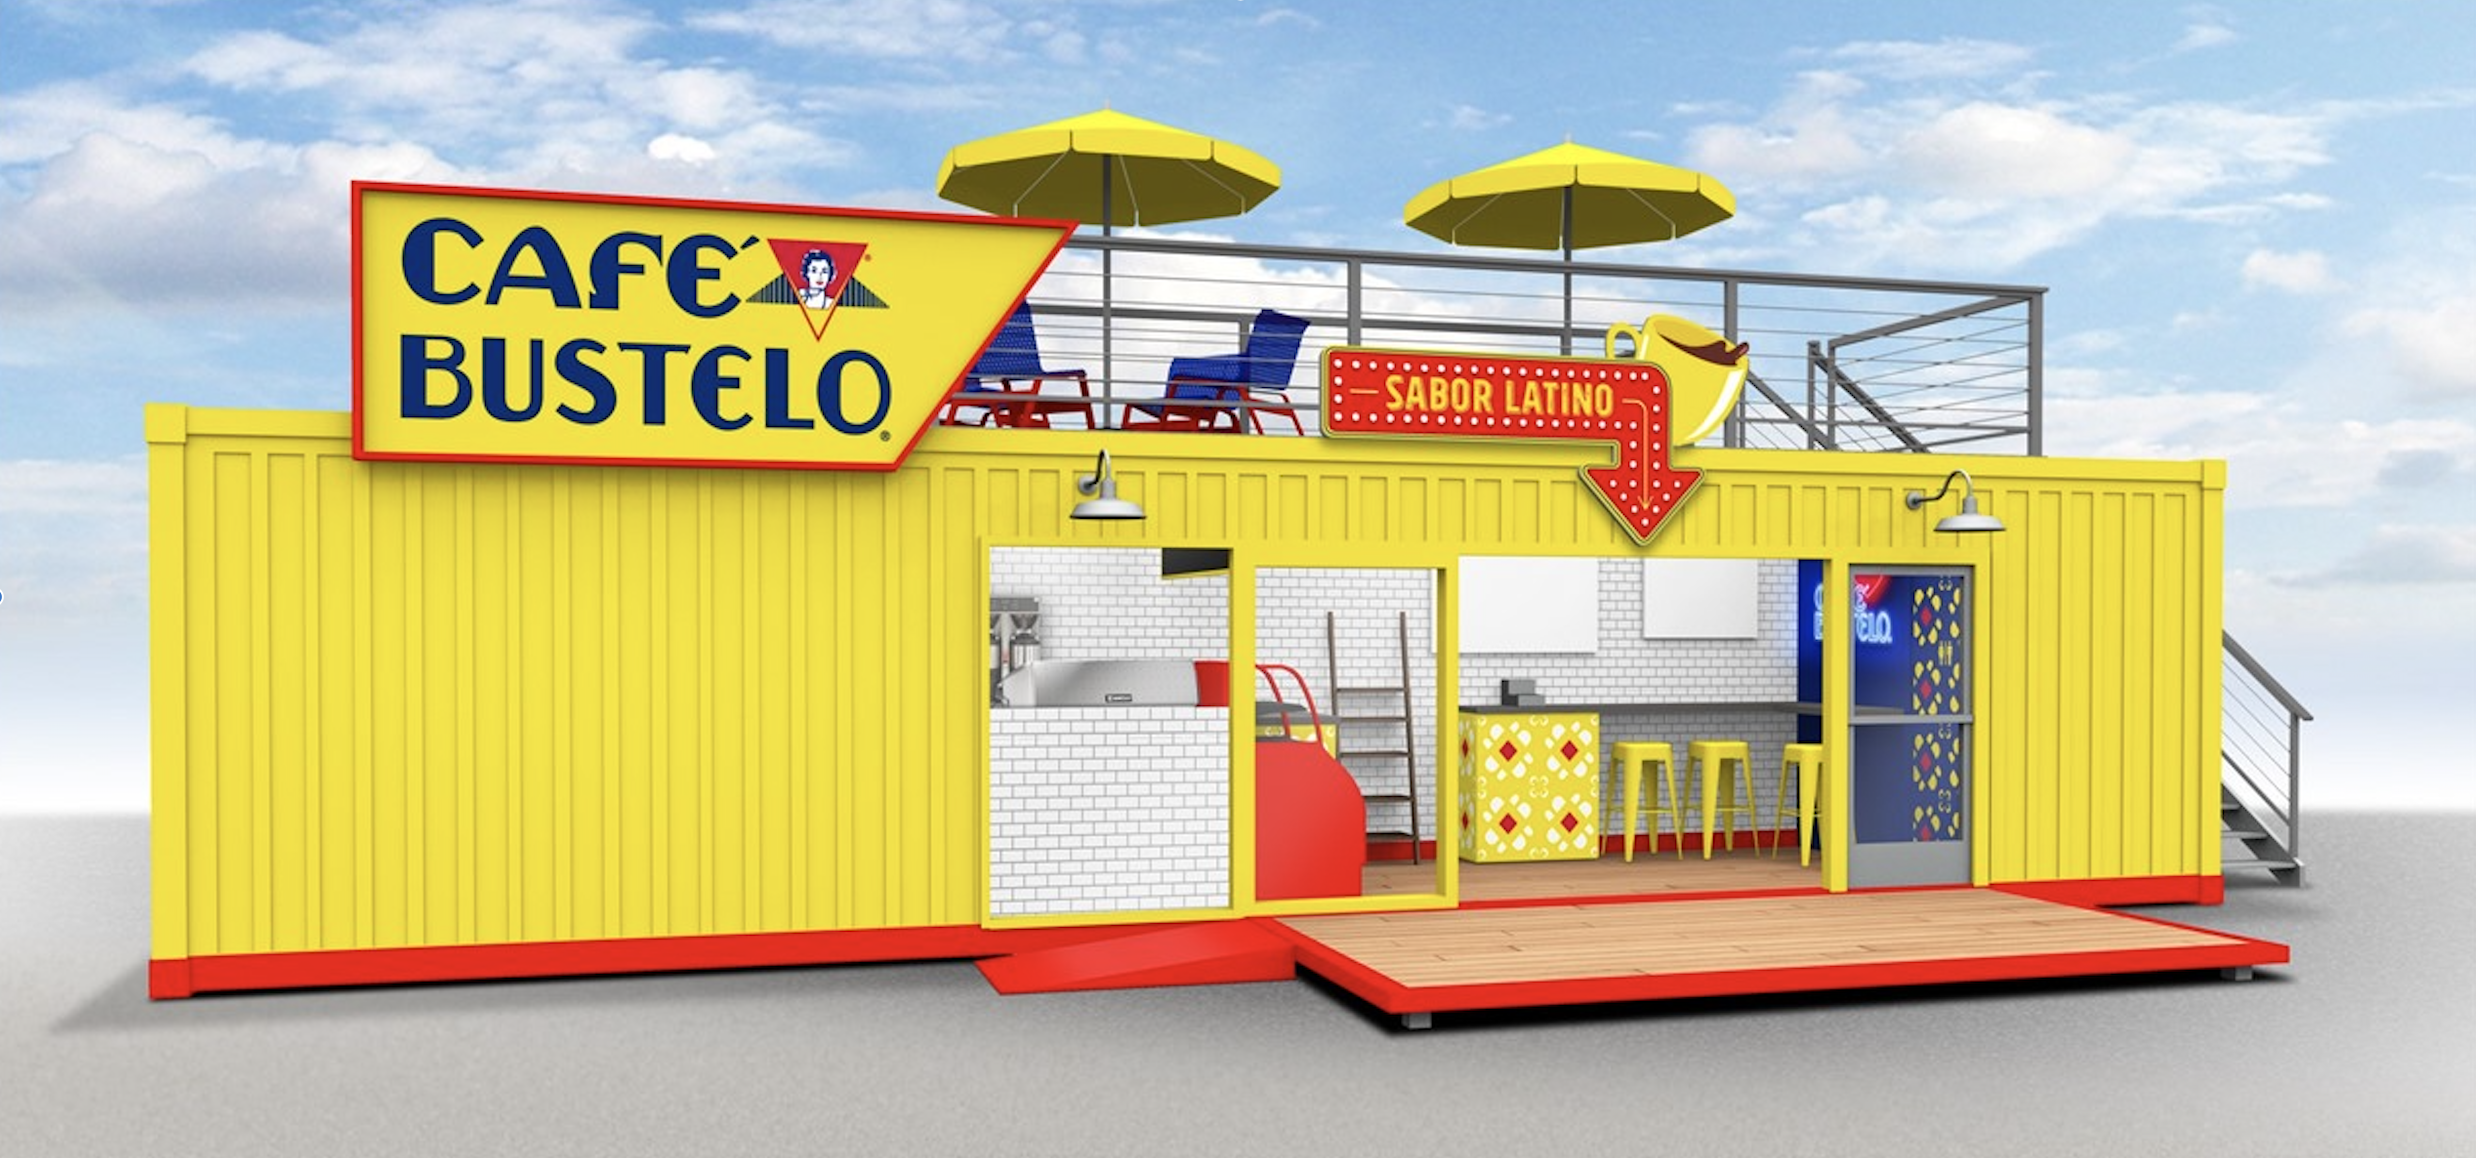 Café Bustelo Turned a Shipping Container Into a Coffee Shop for This Pop-Up